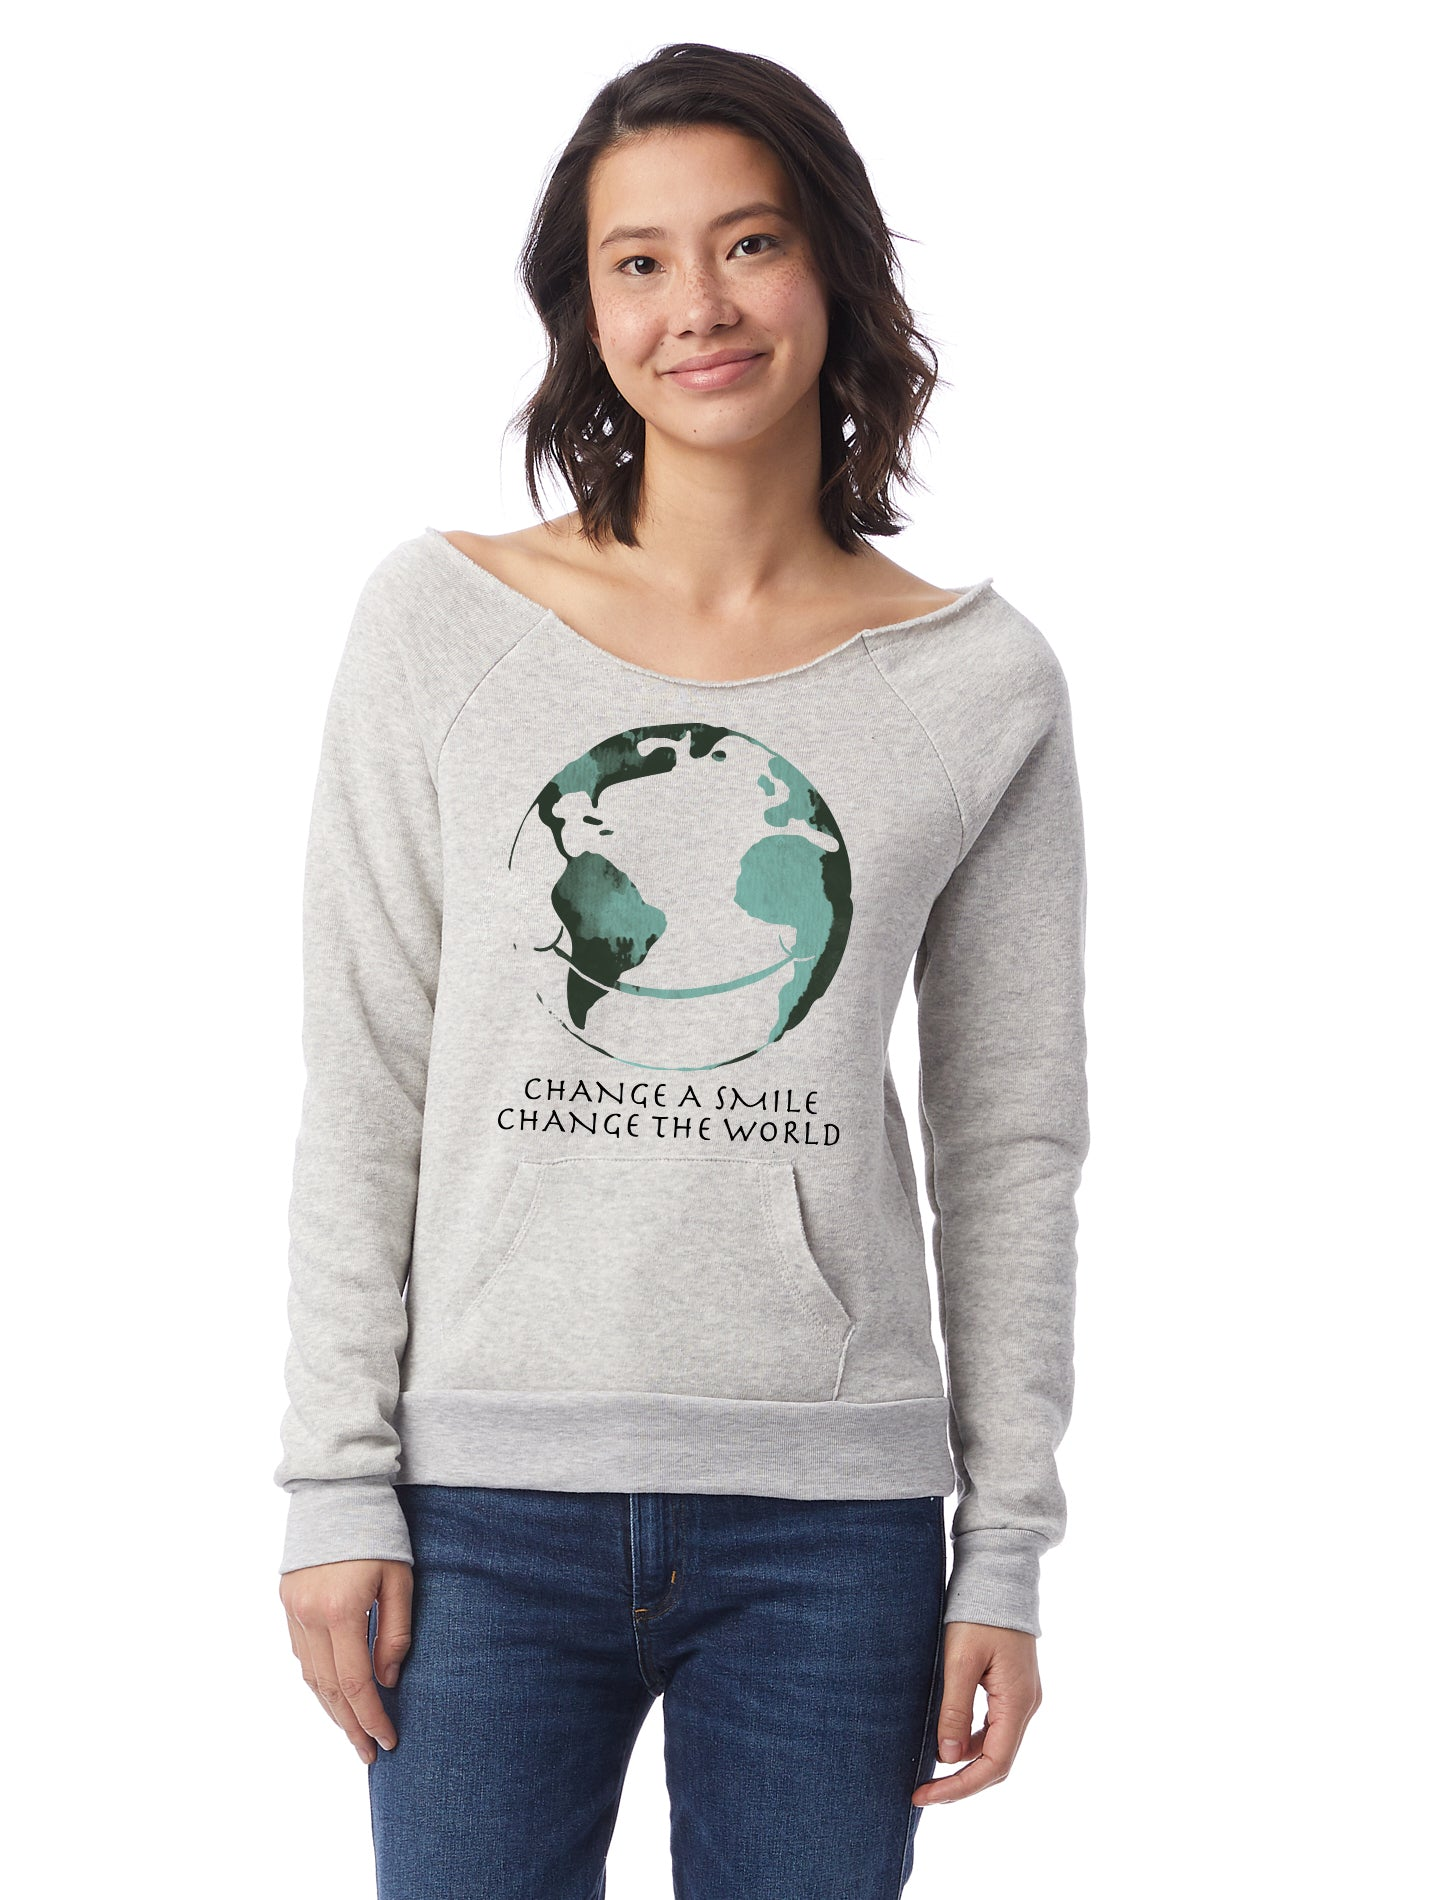 Change A Smile Change The World Womens Triblend Slouchy Sweatshirt With Front Pocket And Raw Edge Neck